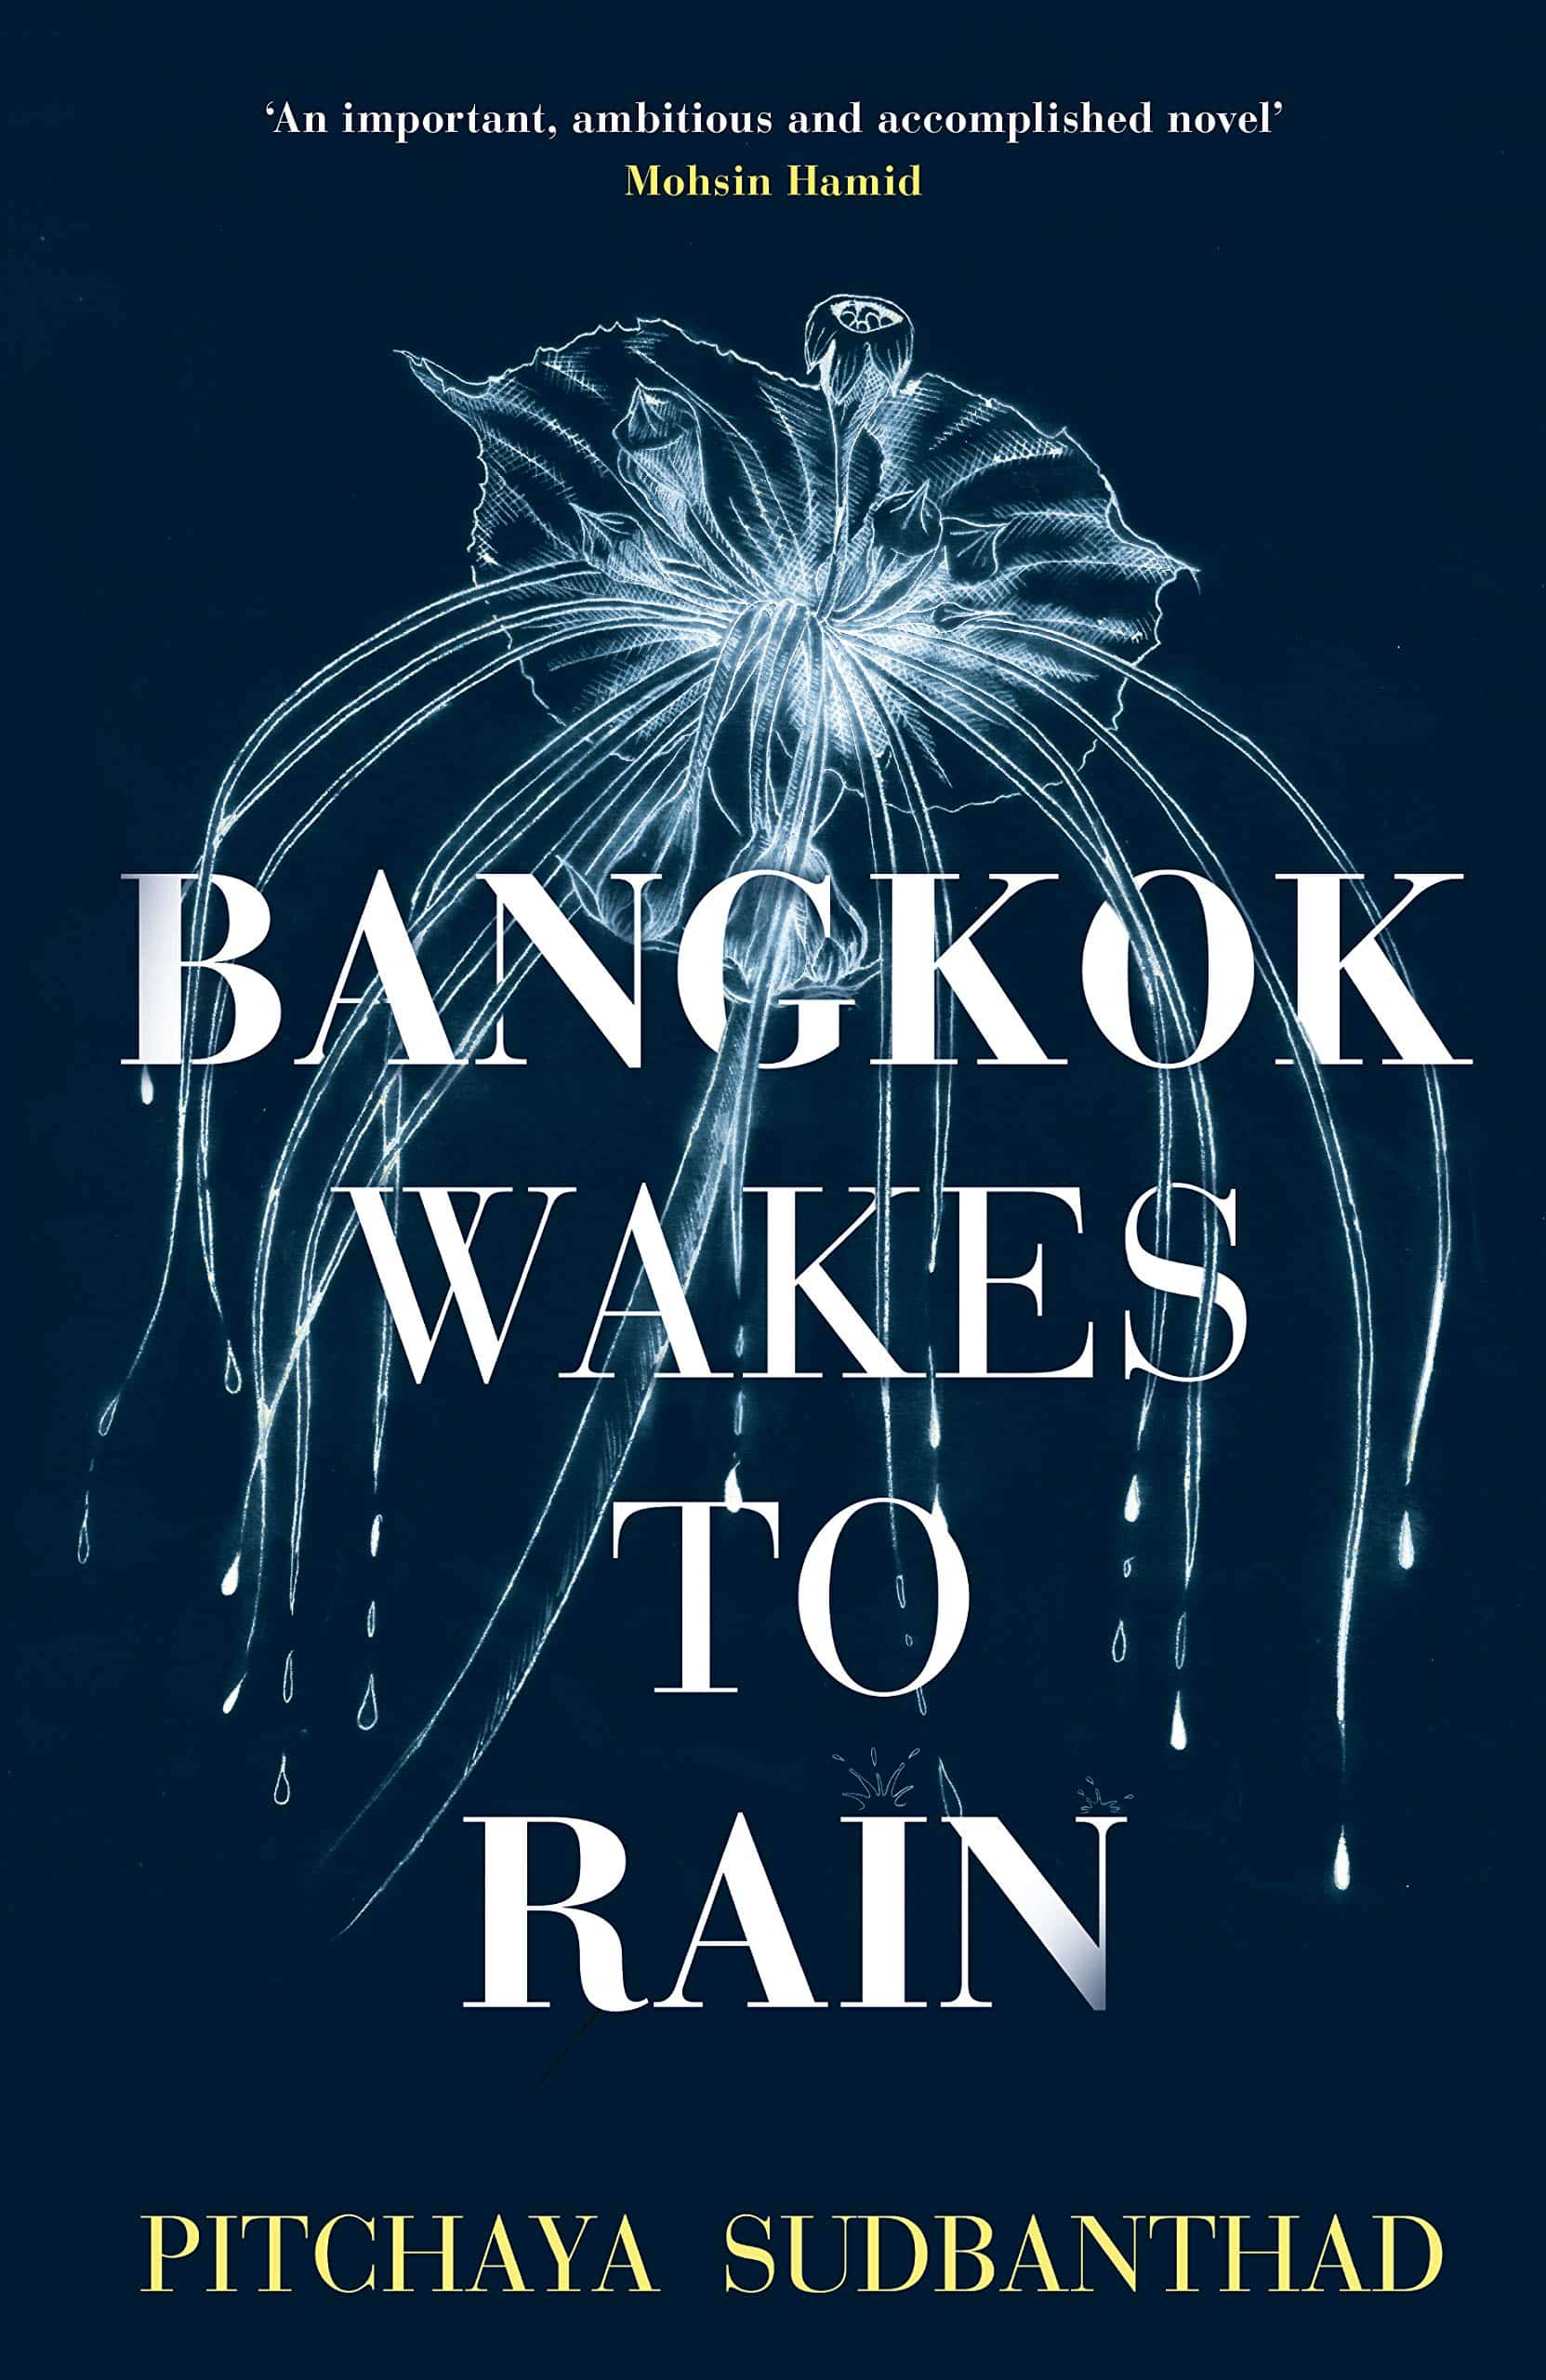 Bangkok Wakes to Rain by Pitchaya Sudbanthad - best Thai books set in Thailand